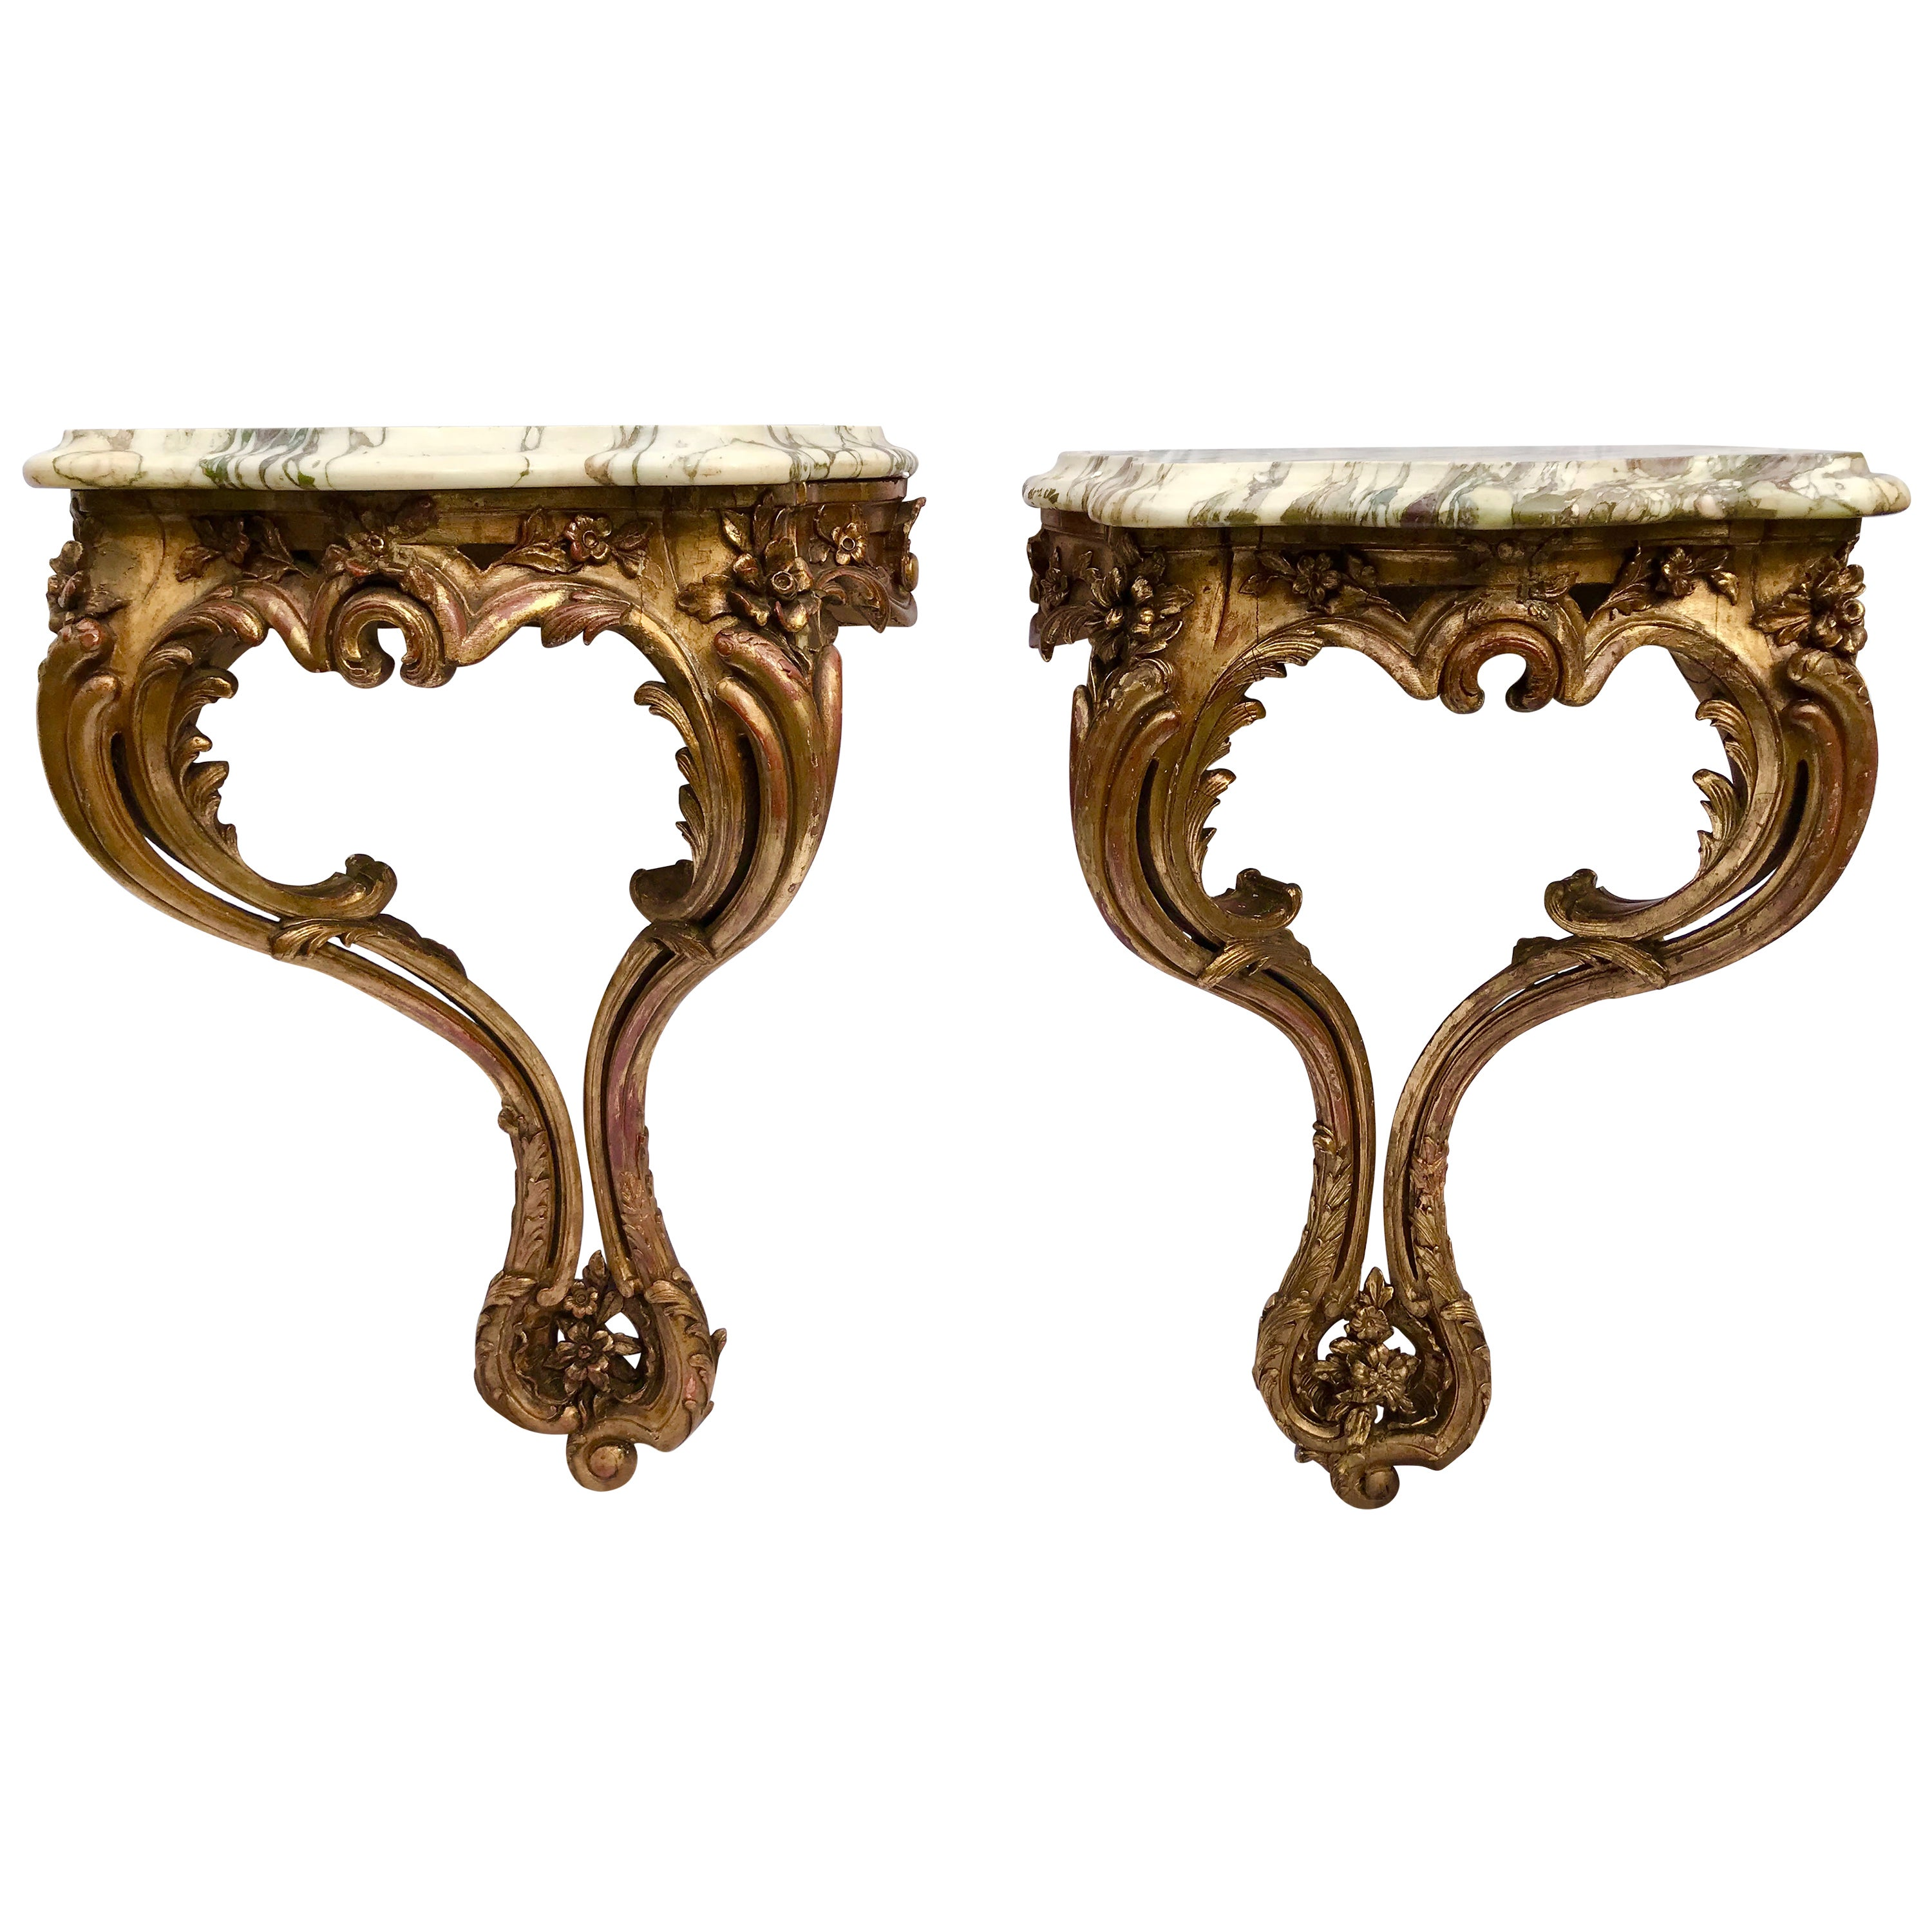 Pair of Louis XV Styled Giltwood Consoles